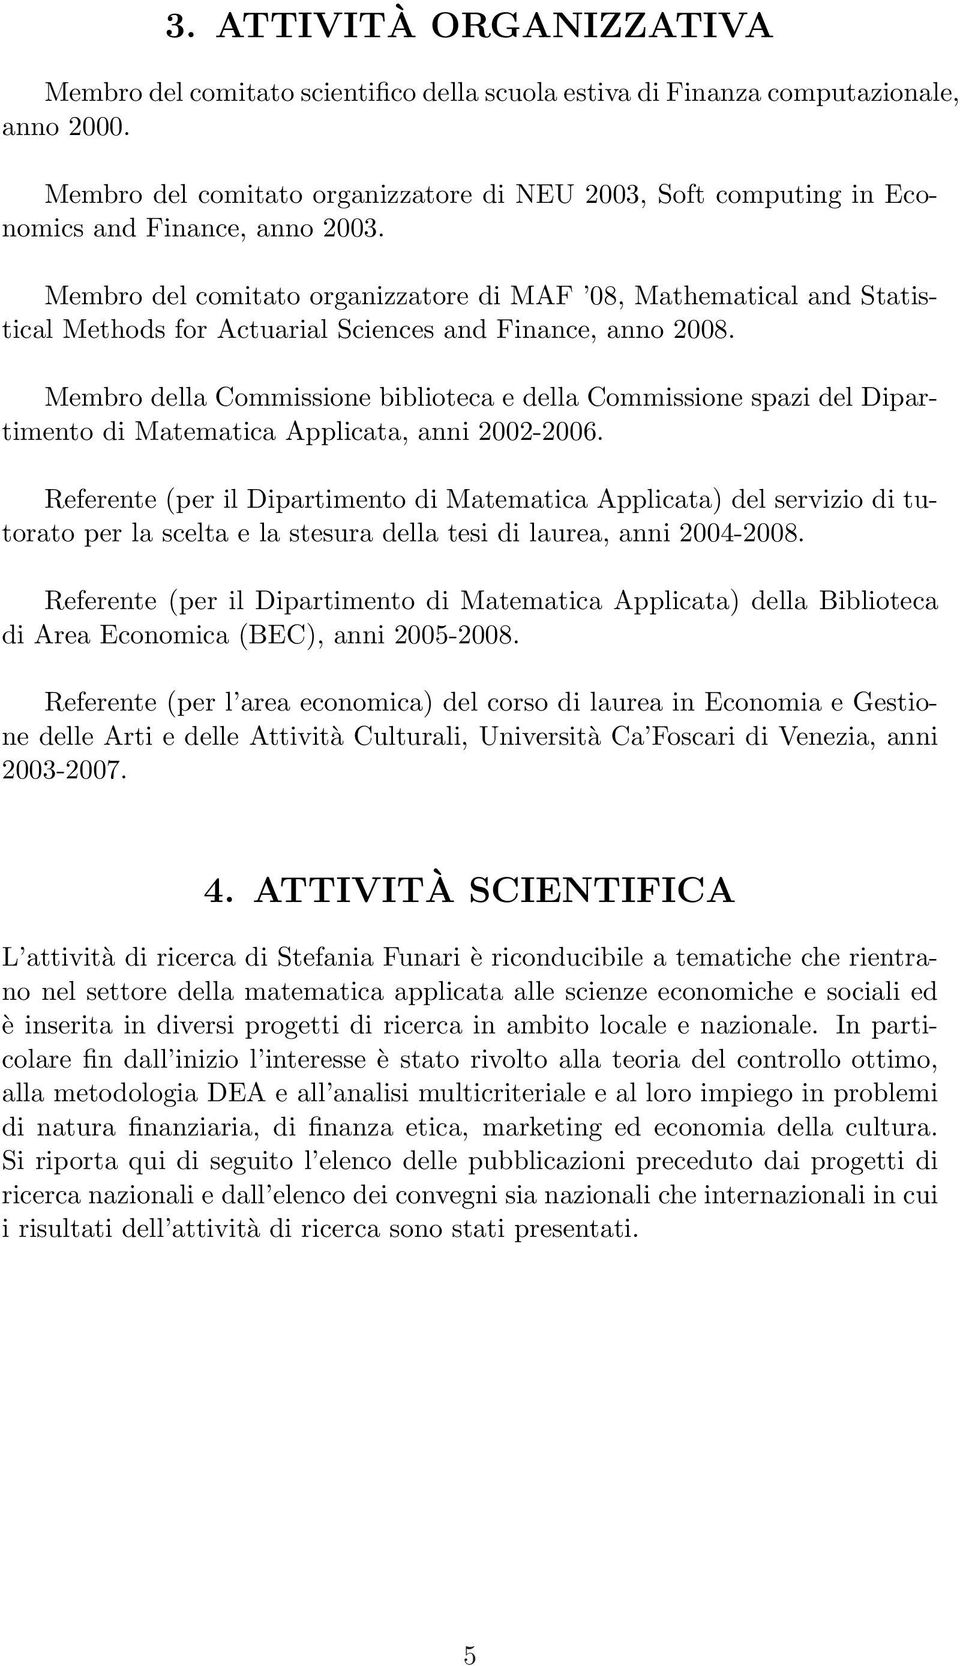 Membro del comitato organizzatore di MAF 08, Mathematical and Statistical Methods for Actuarial Sciences and Finance, anno 2008.